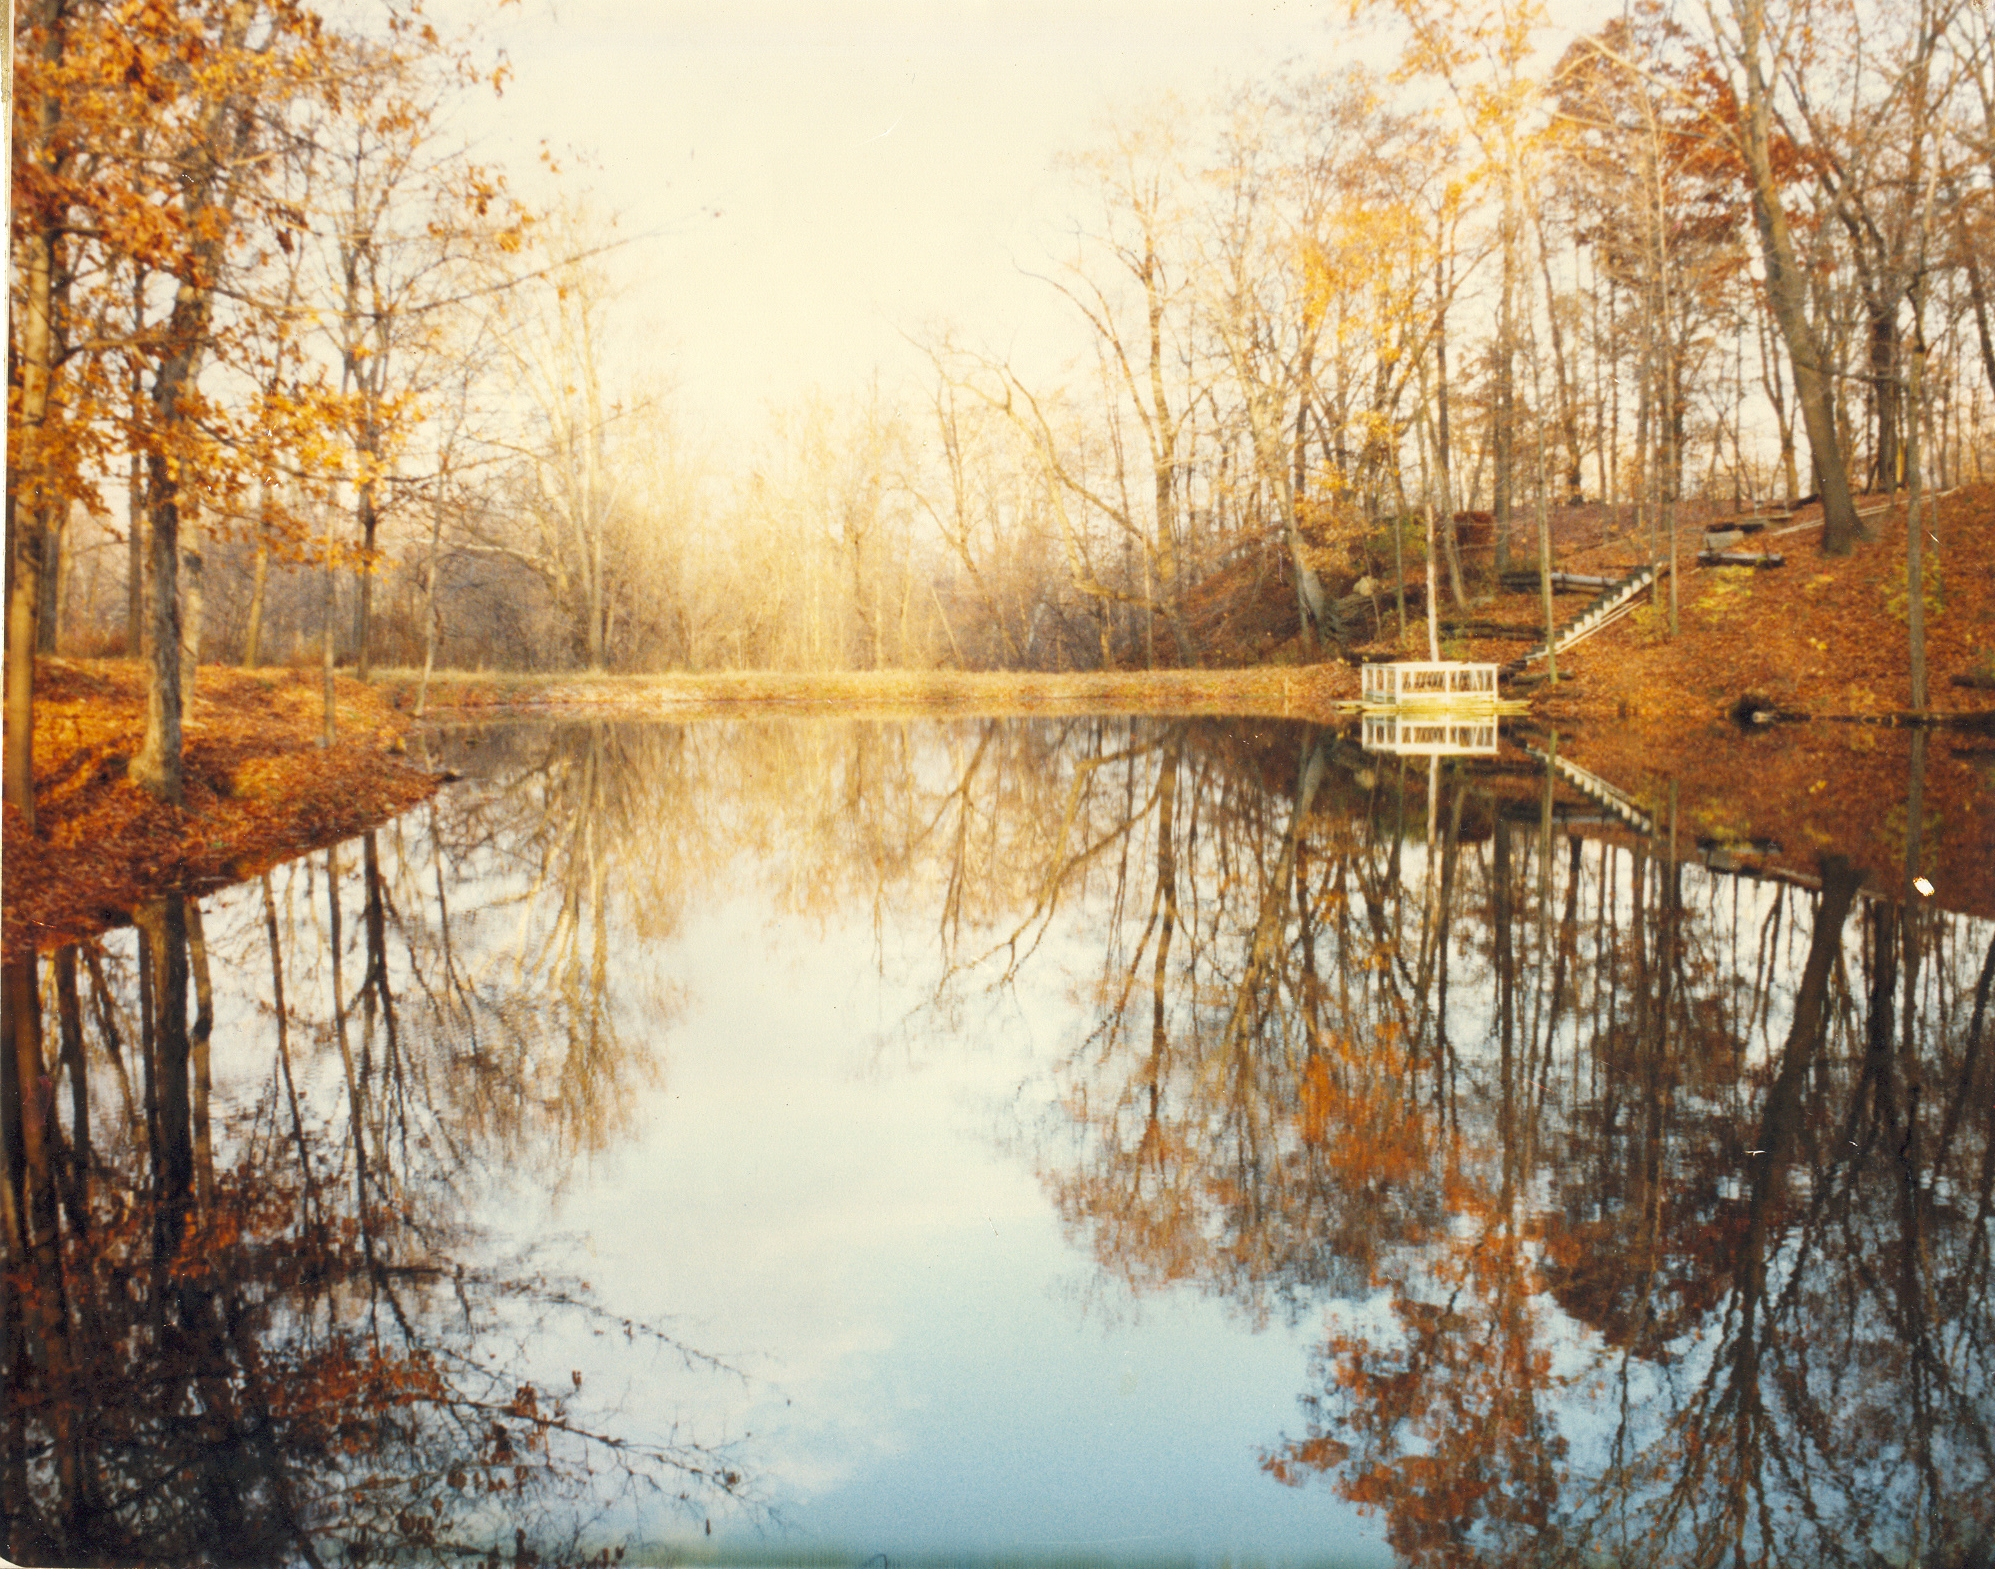 Blue autumn trees sky brown lake art fall nature water 35mm wow